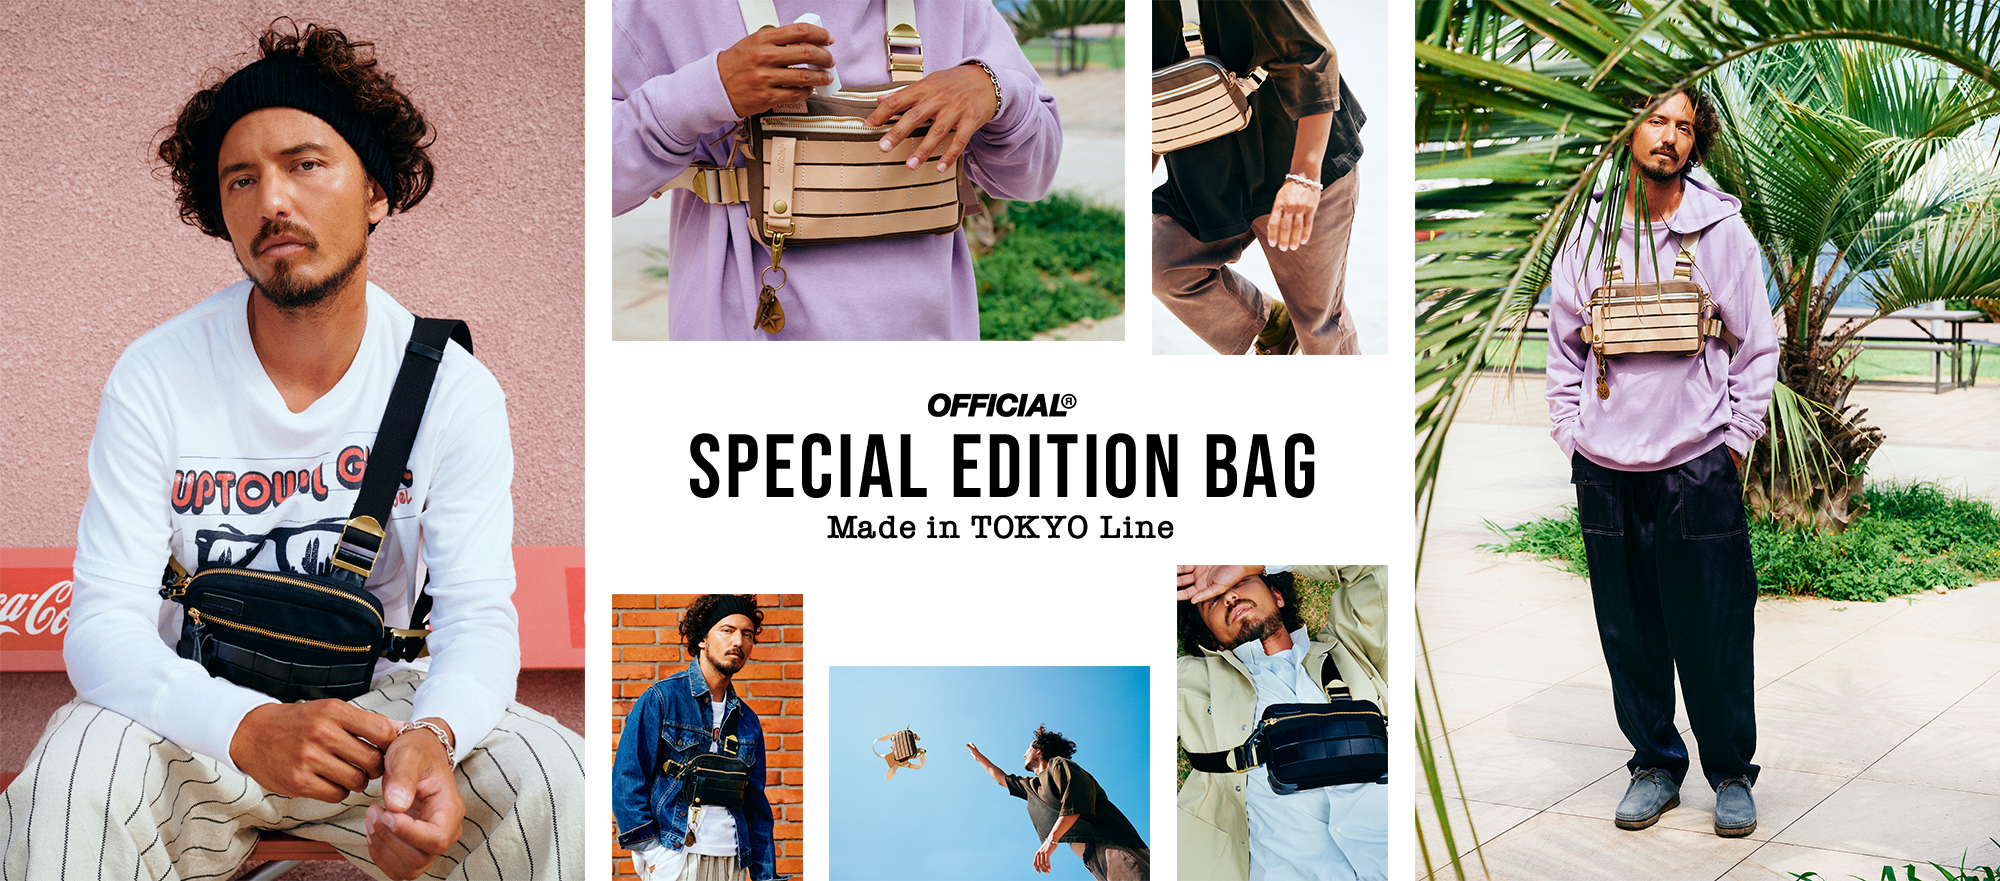 OFFICIAL Made in TOKYO SPECIAL EDITION CHEST BAG